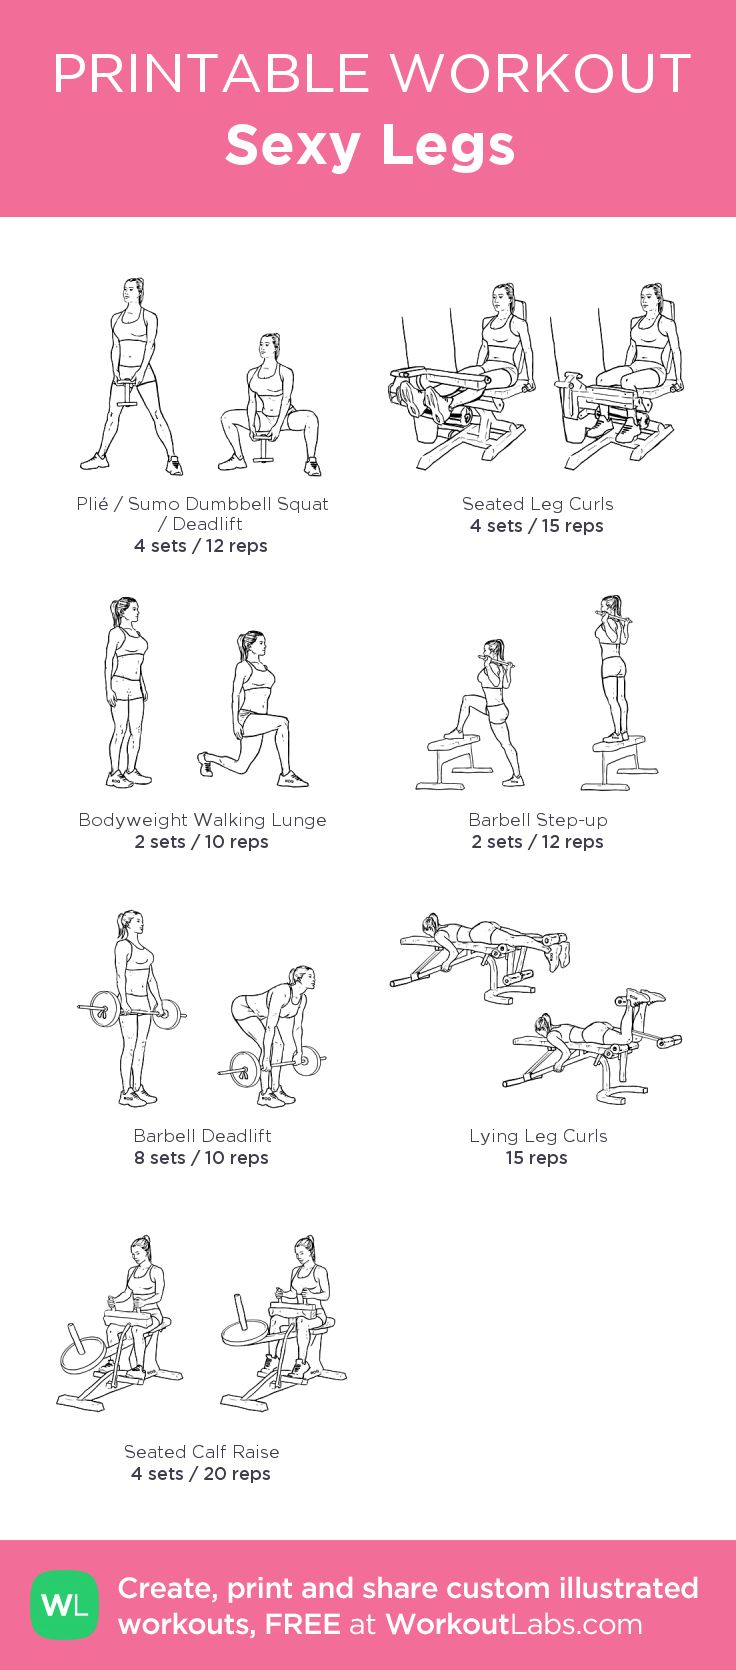 Sexy Legs:my custom printable workout by @WorkoutLabs #workoutlabs #customworkout